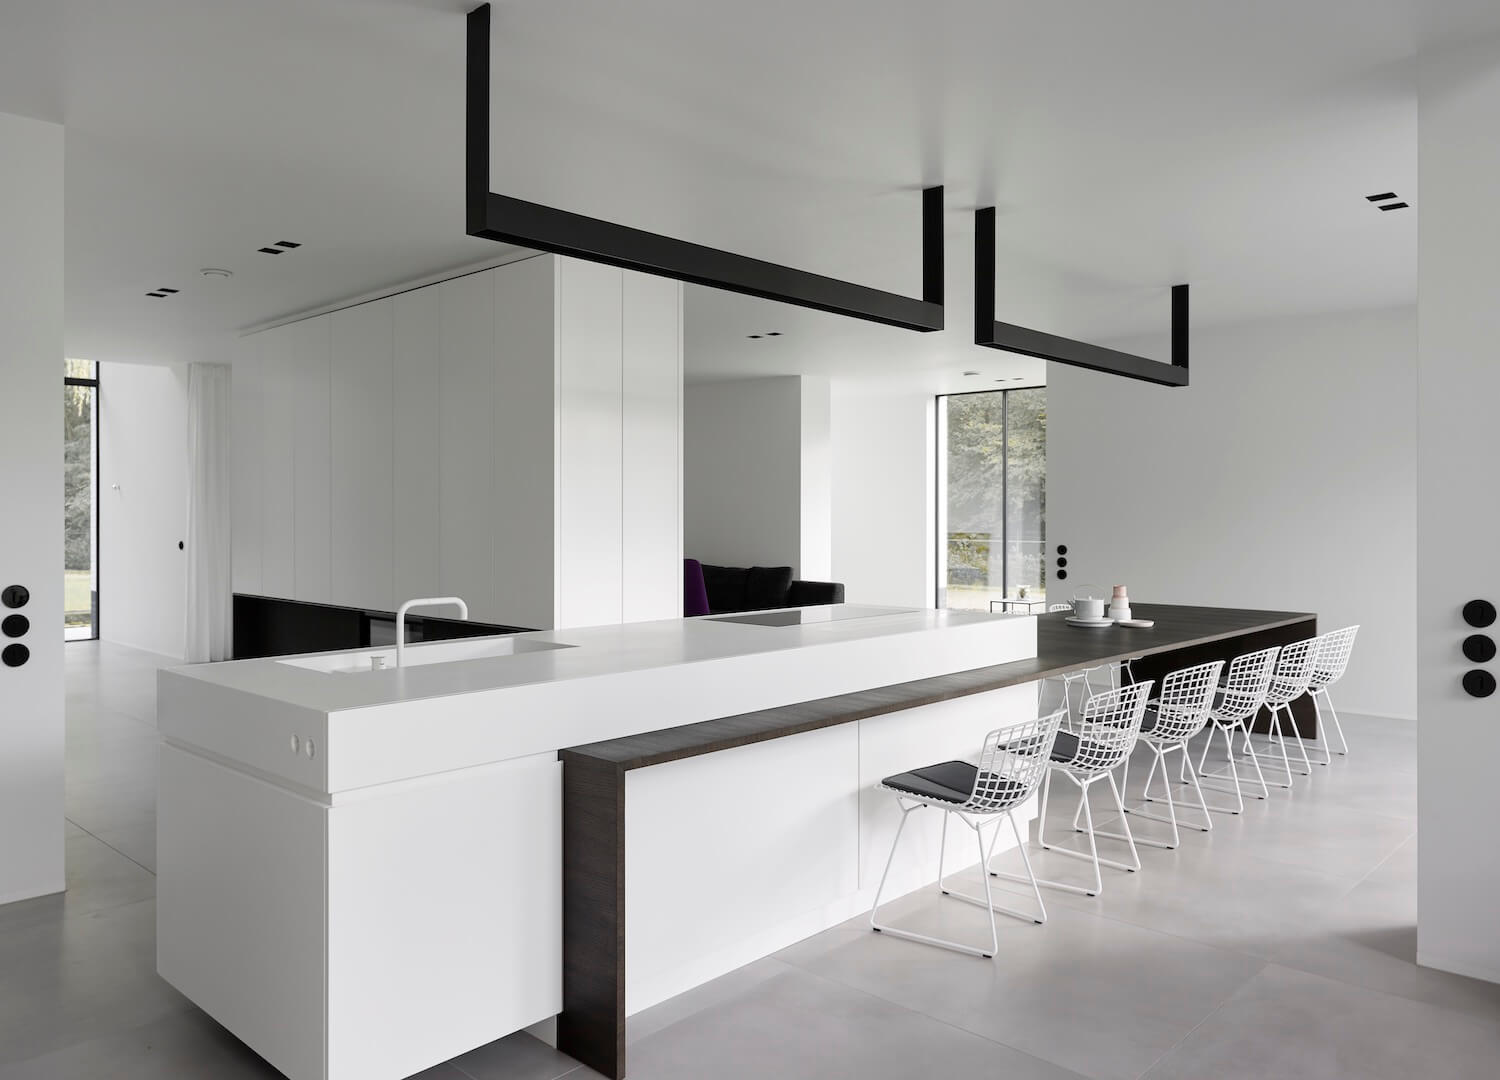 The Bright White House by Studio Niels